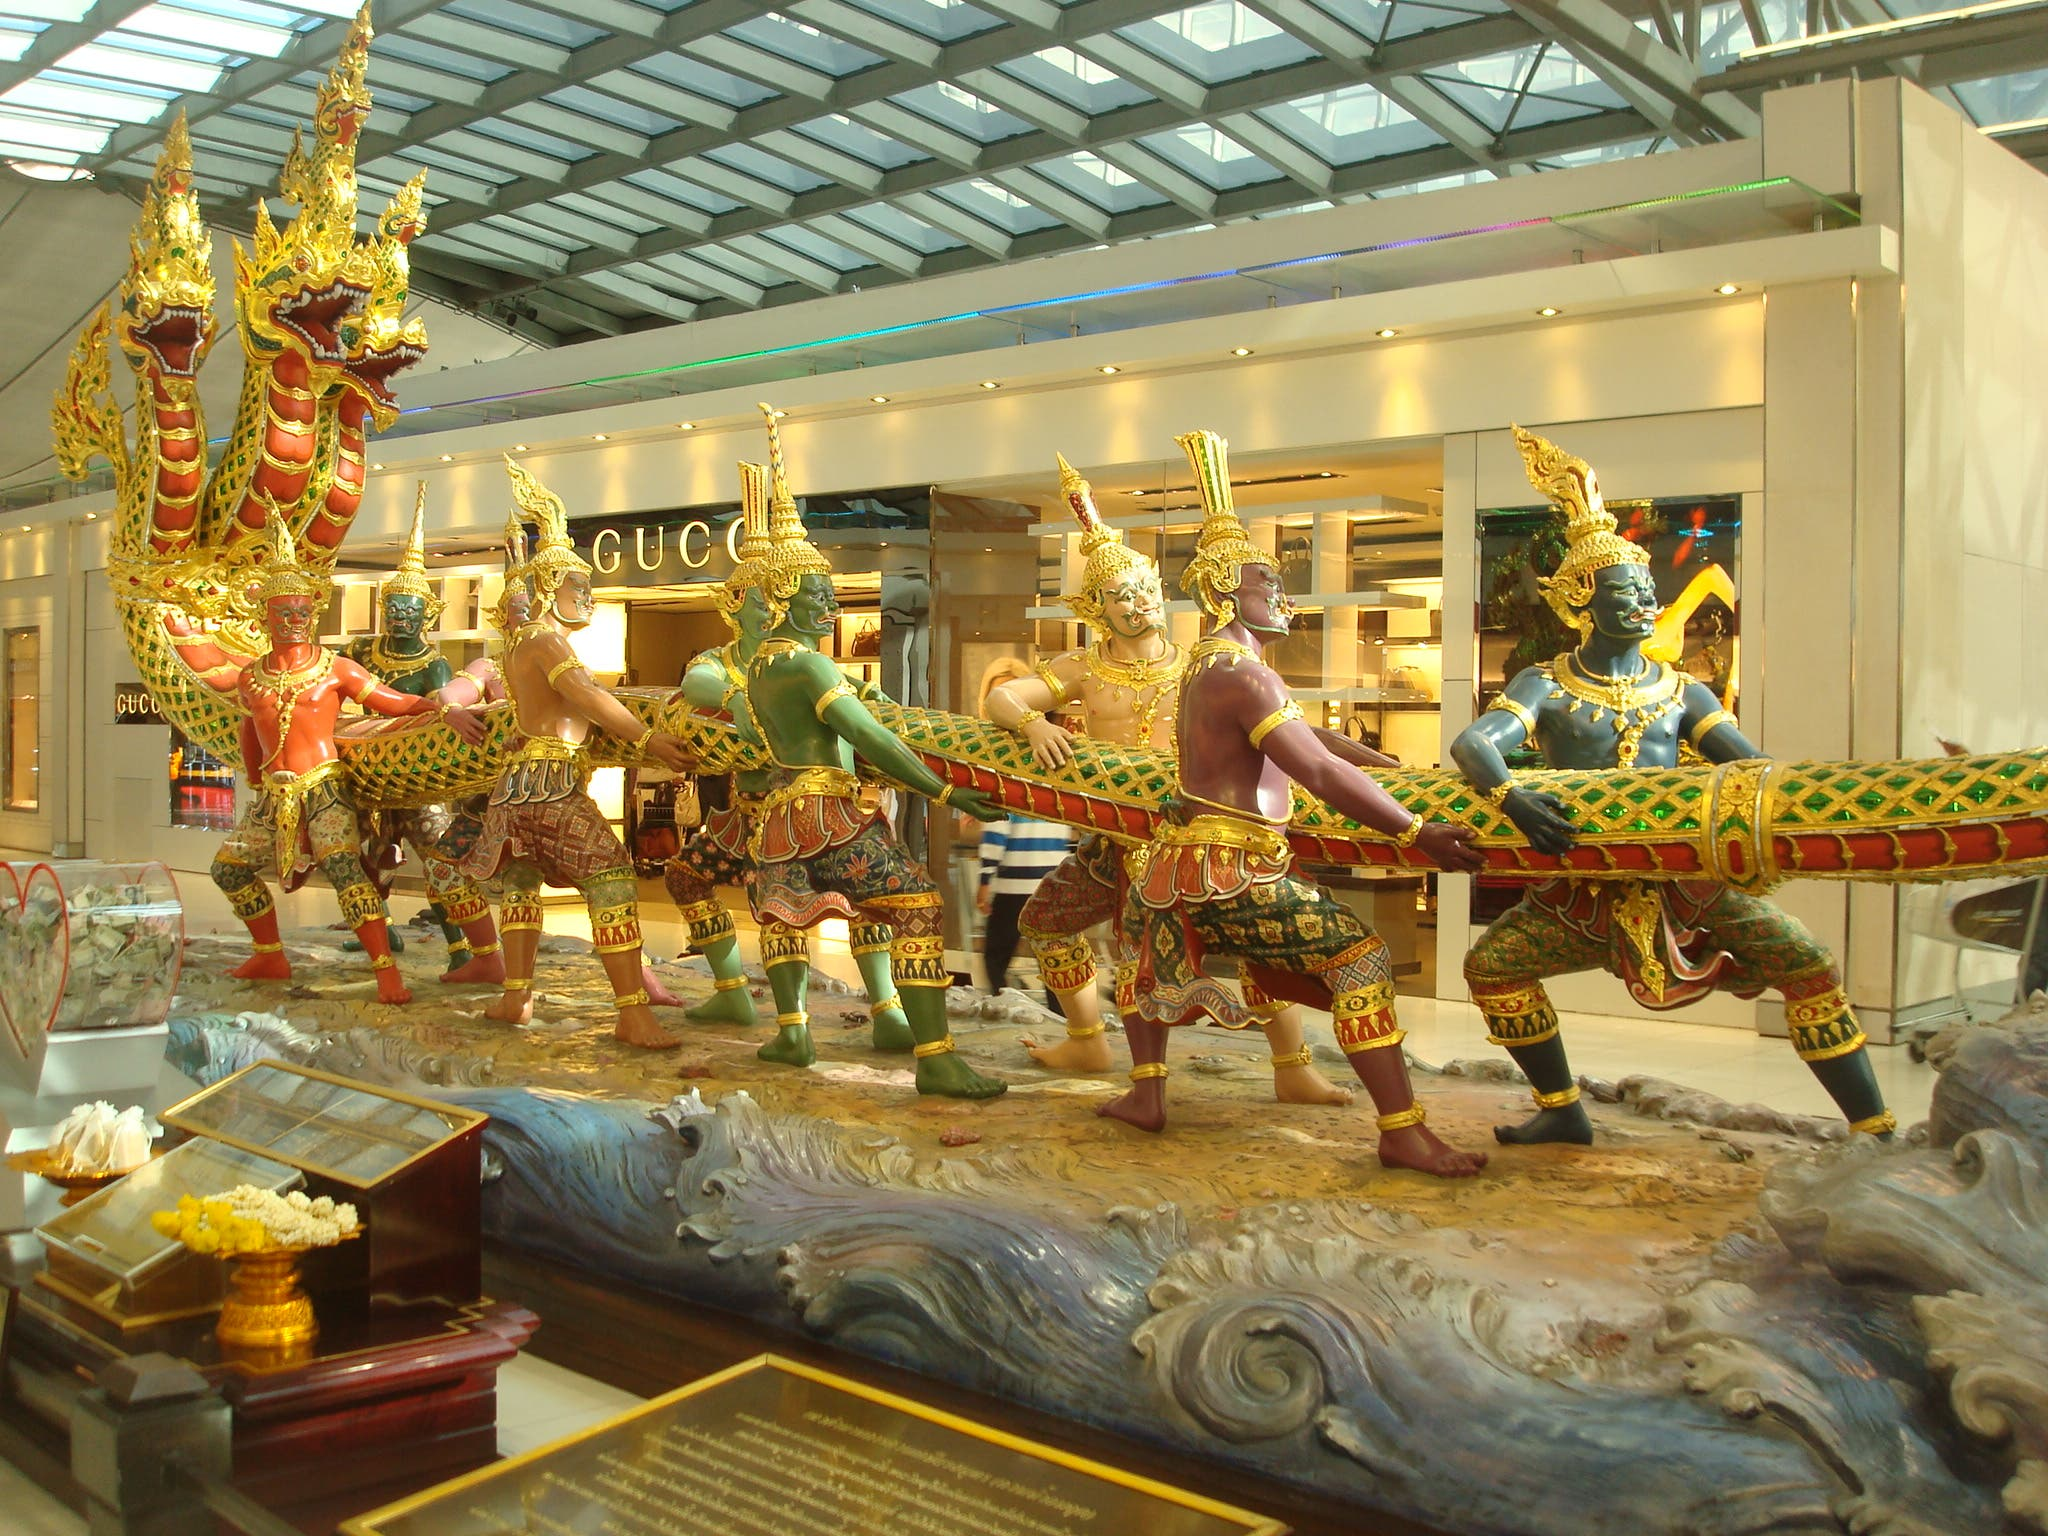 Tableau in the Suvarnabhumi Int'l Airport